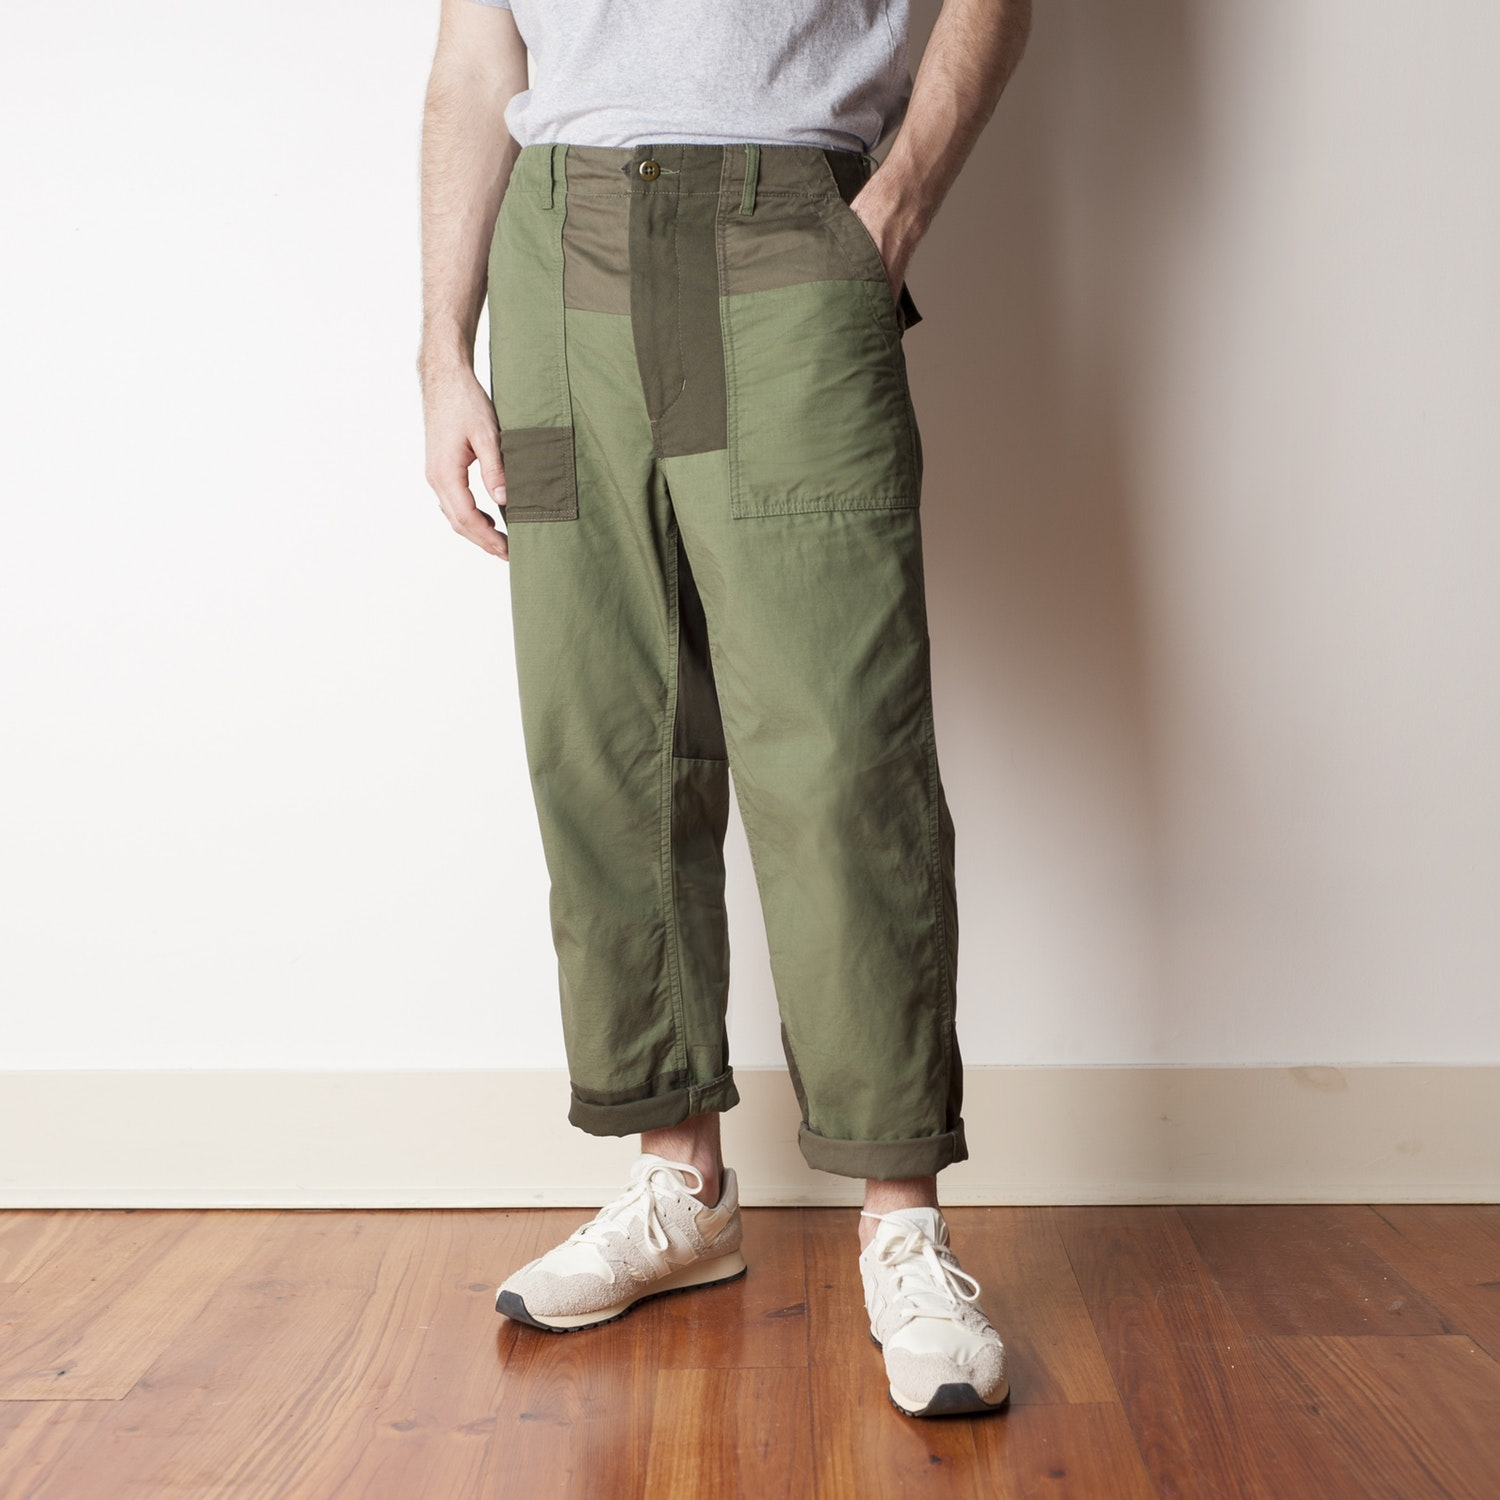 engineered-garments-fatigue-pant-cotton-ripstop-olive-02.jpg